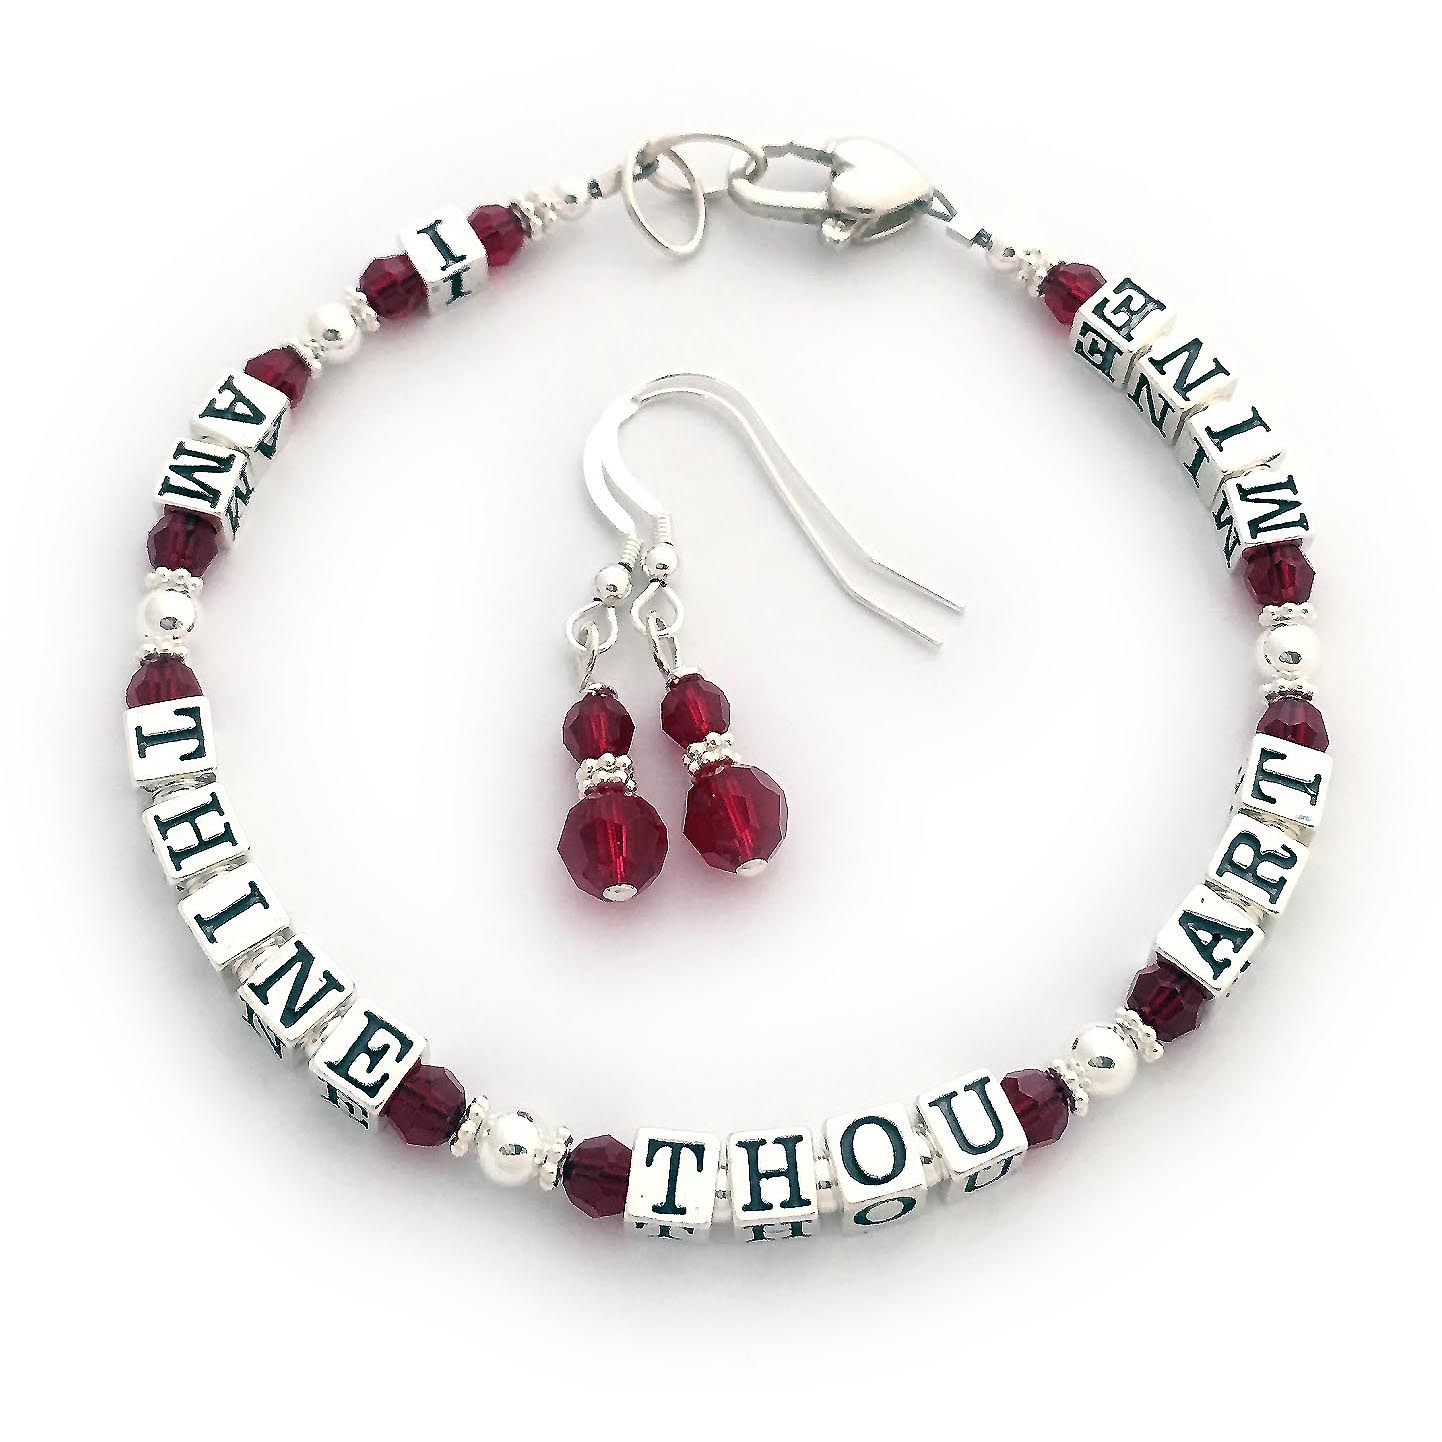 I AM THINE THOU ART MINE Bracelet